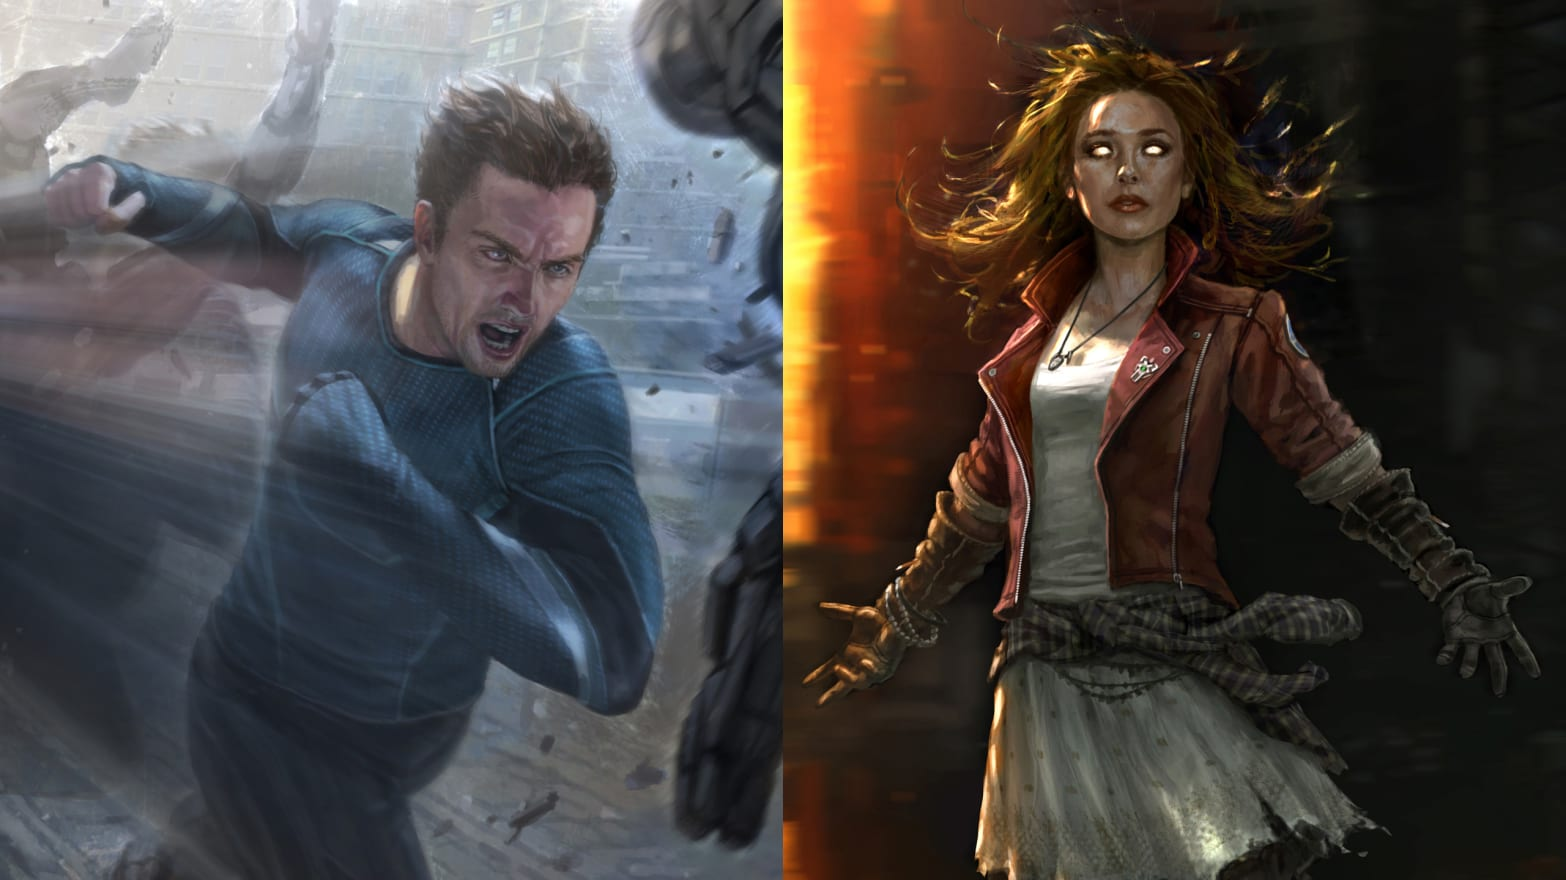 A Guide To Scarlet Witch And Quicksilver The Twins Teased At The